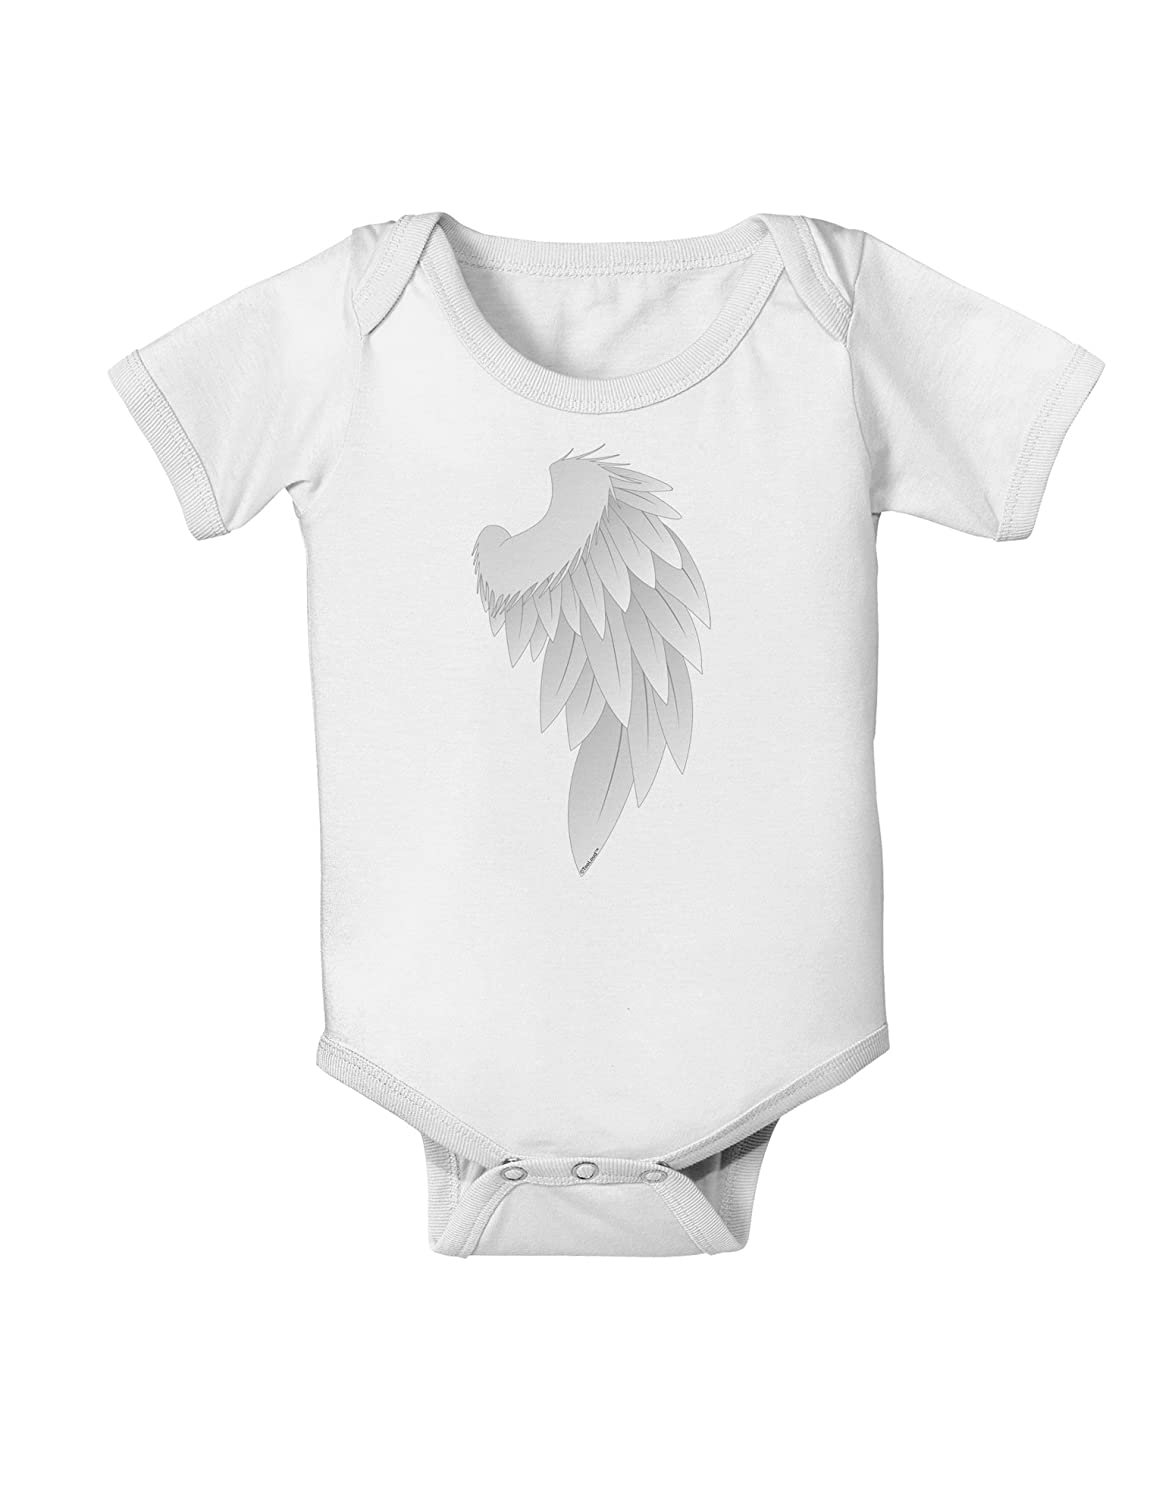 TooLoud Single Right Angel Wing Design Couples Baby Romper Bodysuit